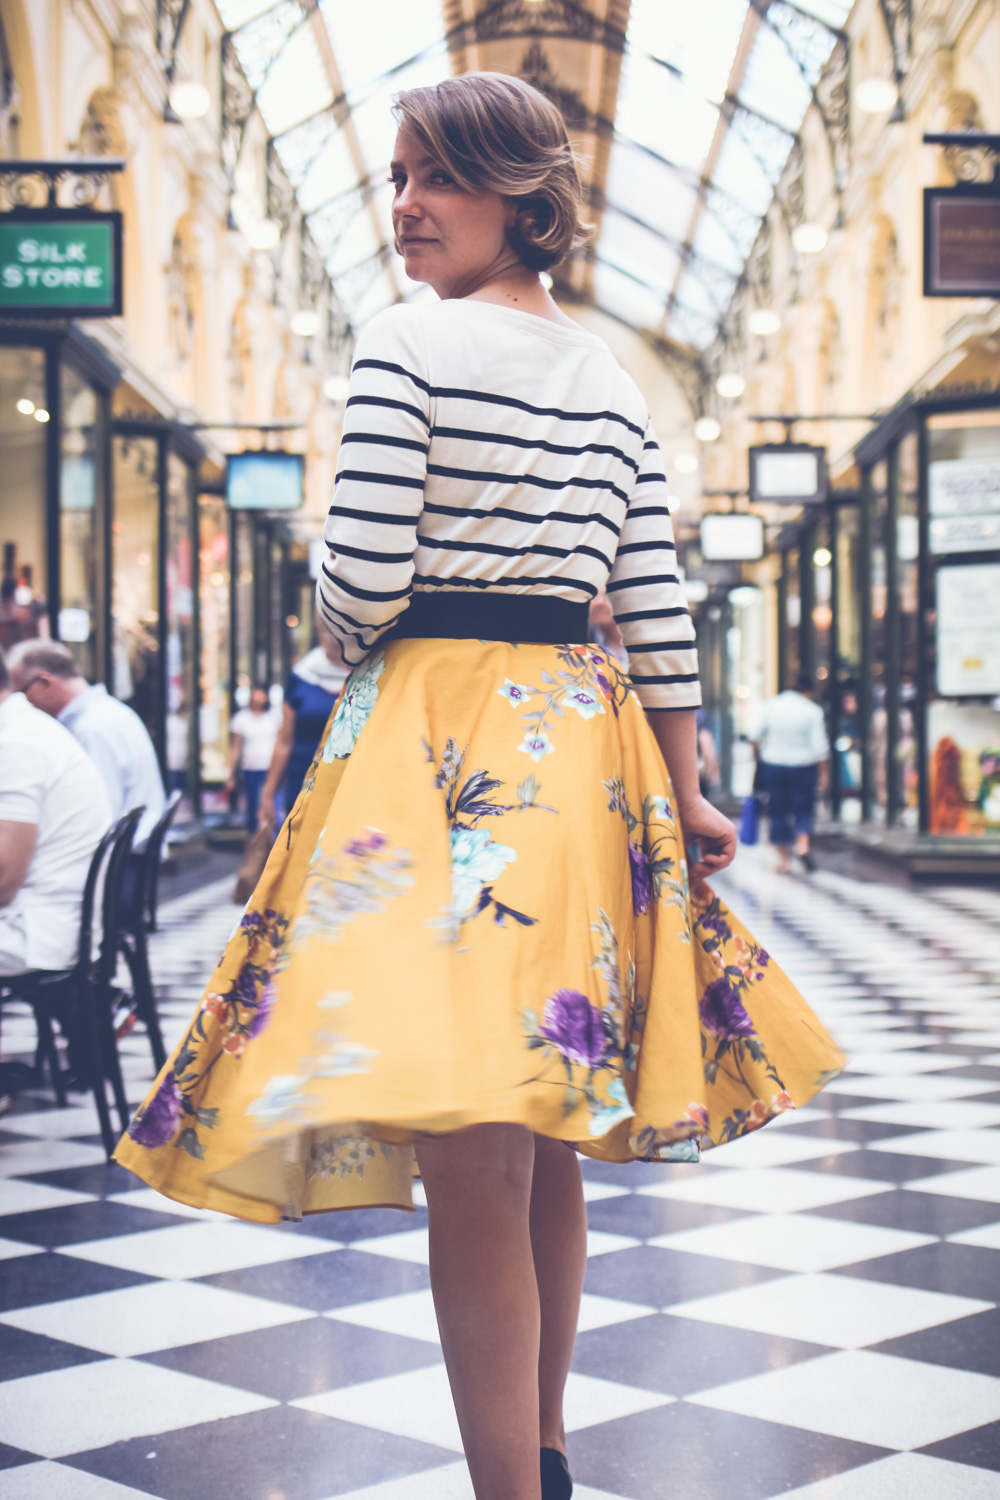 @findingfemme wears black and white striped top with yellow Modcloth floral skirt at the Block Arcade in Melbourne